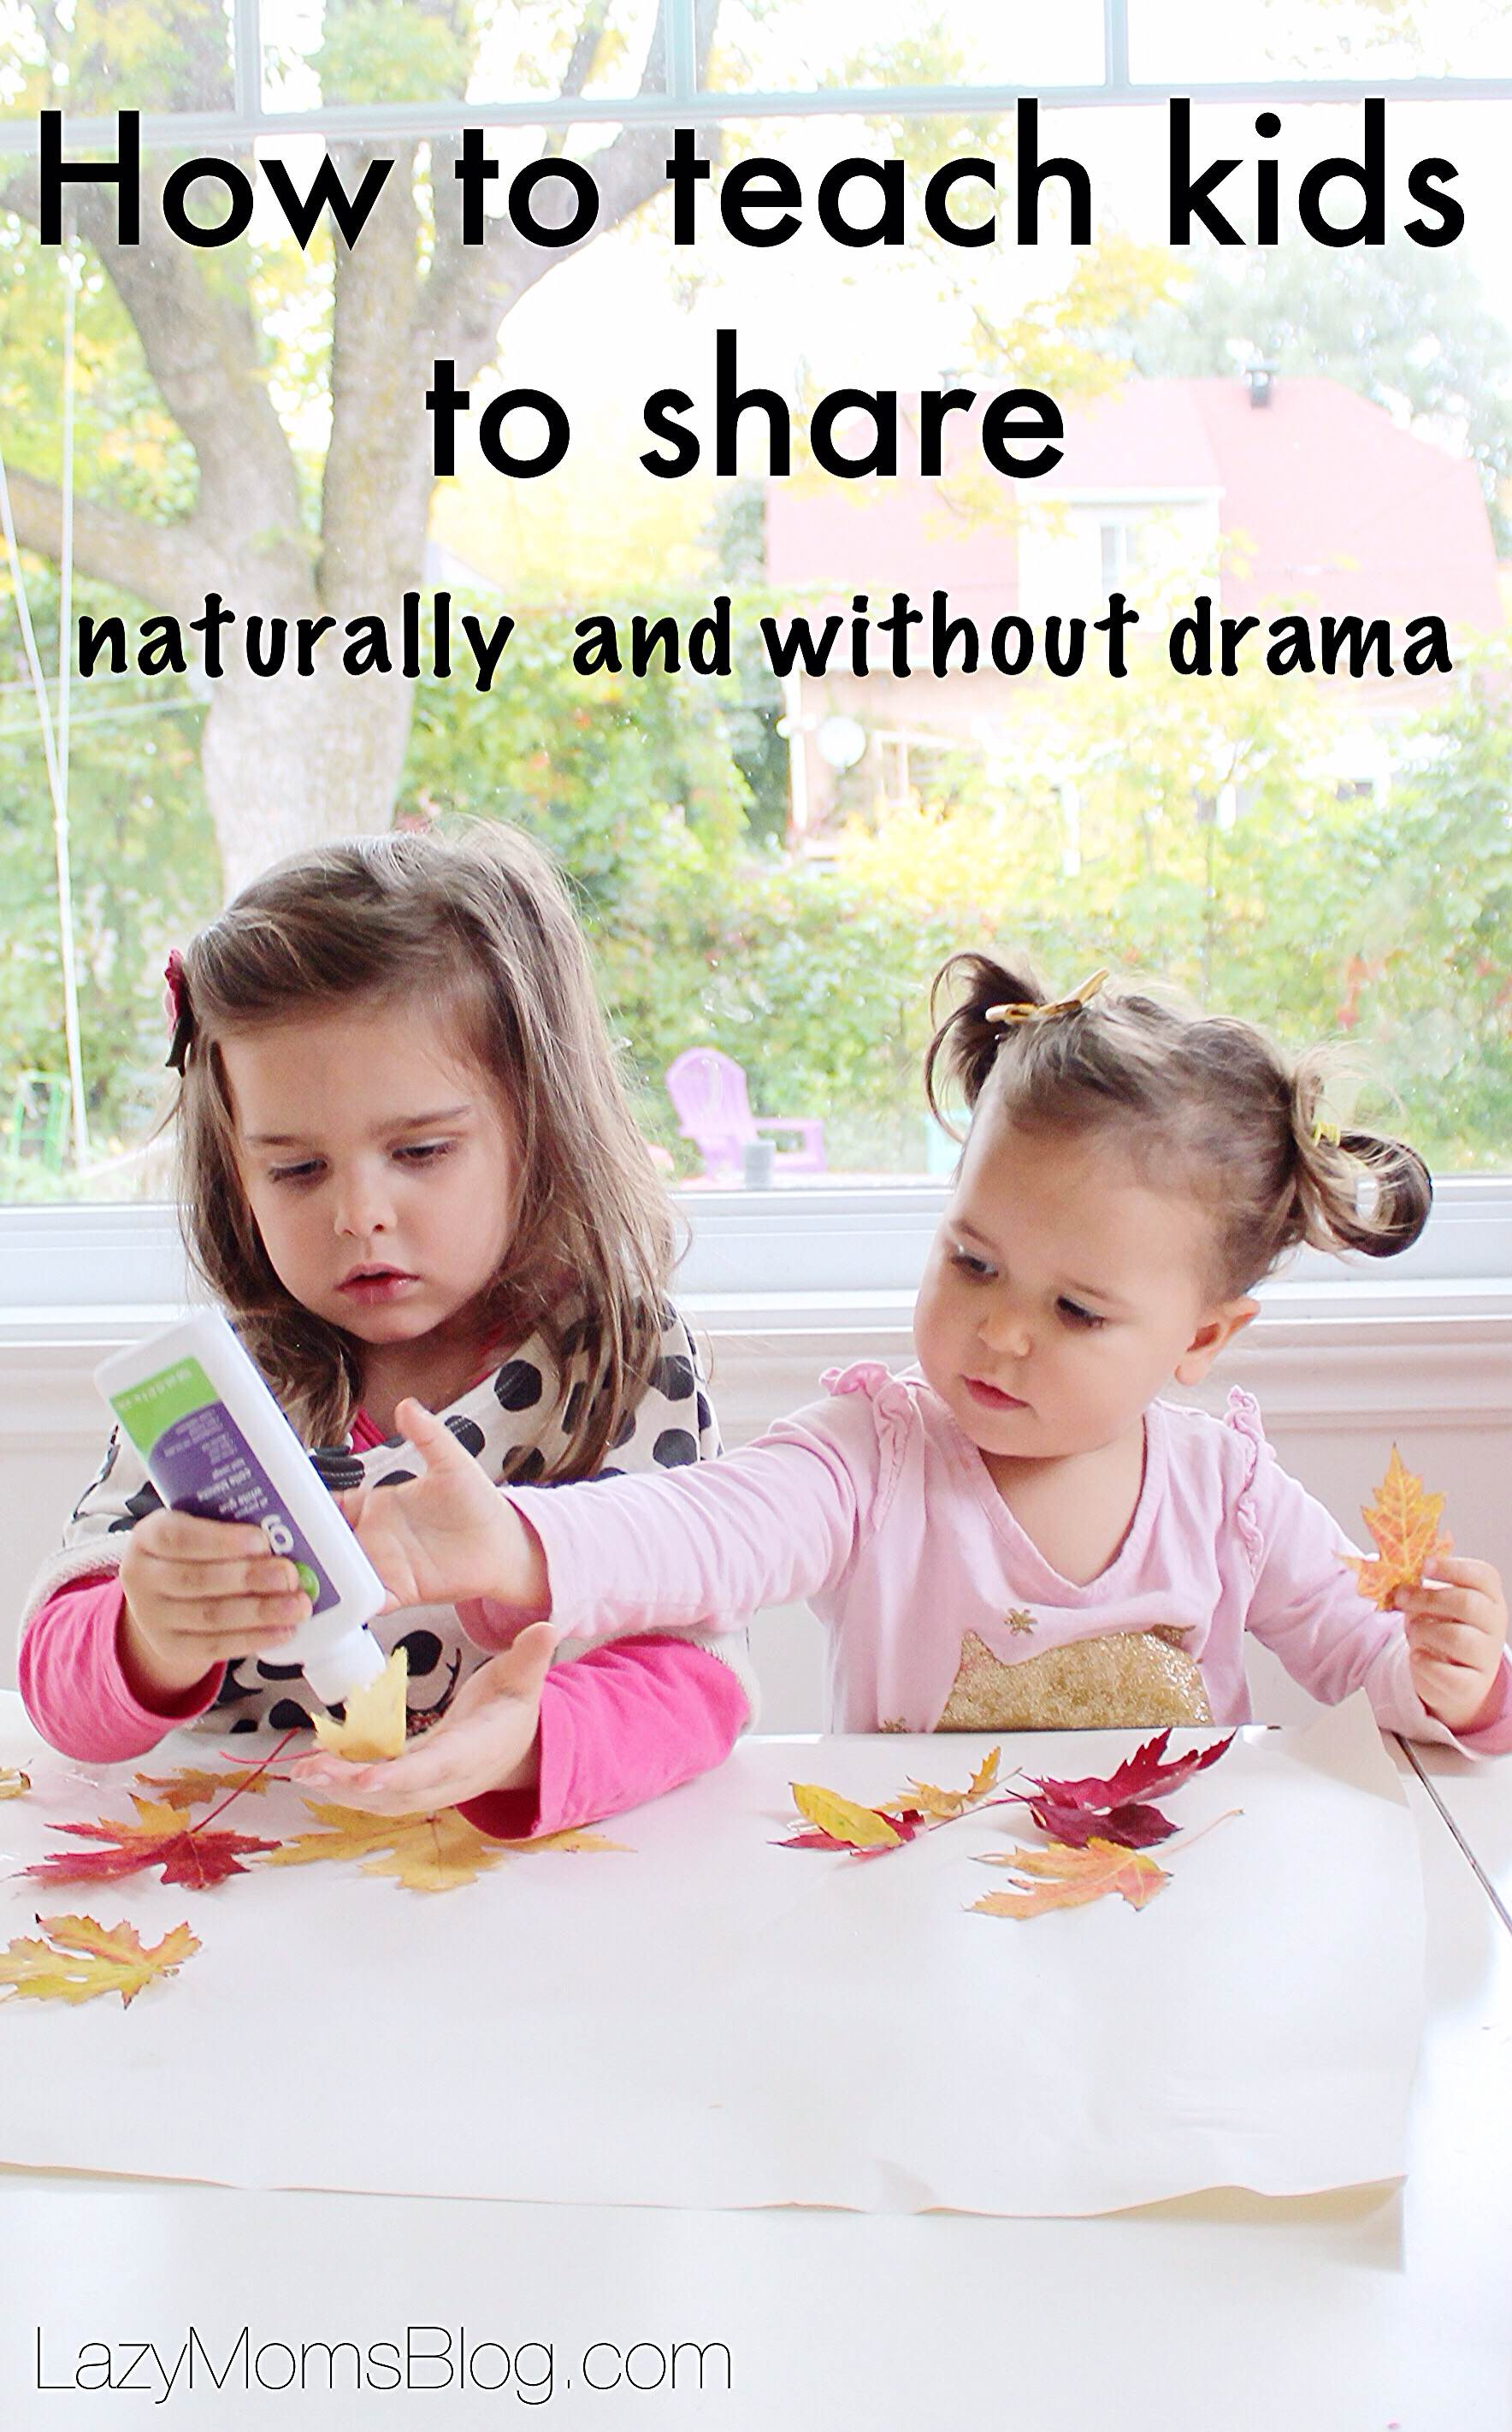 How to teach kids to share, naturally, without the drama, and making it fun. Simple parenting tricks that work!